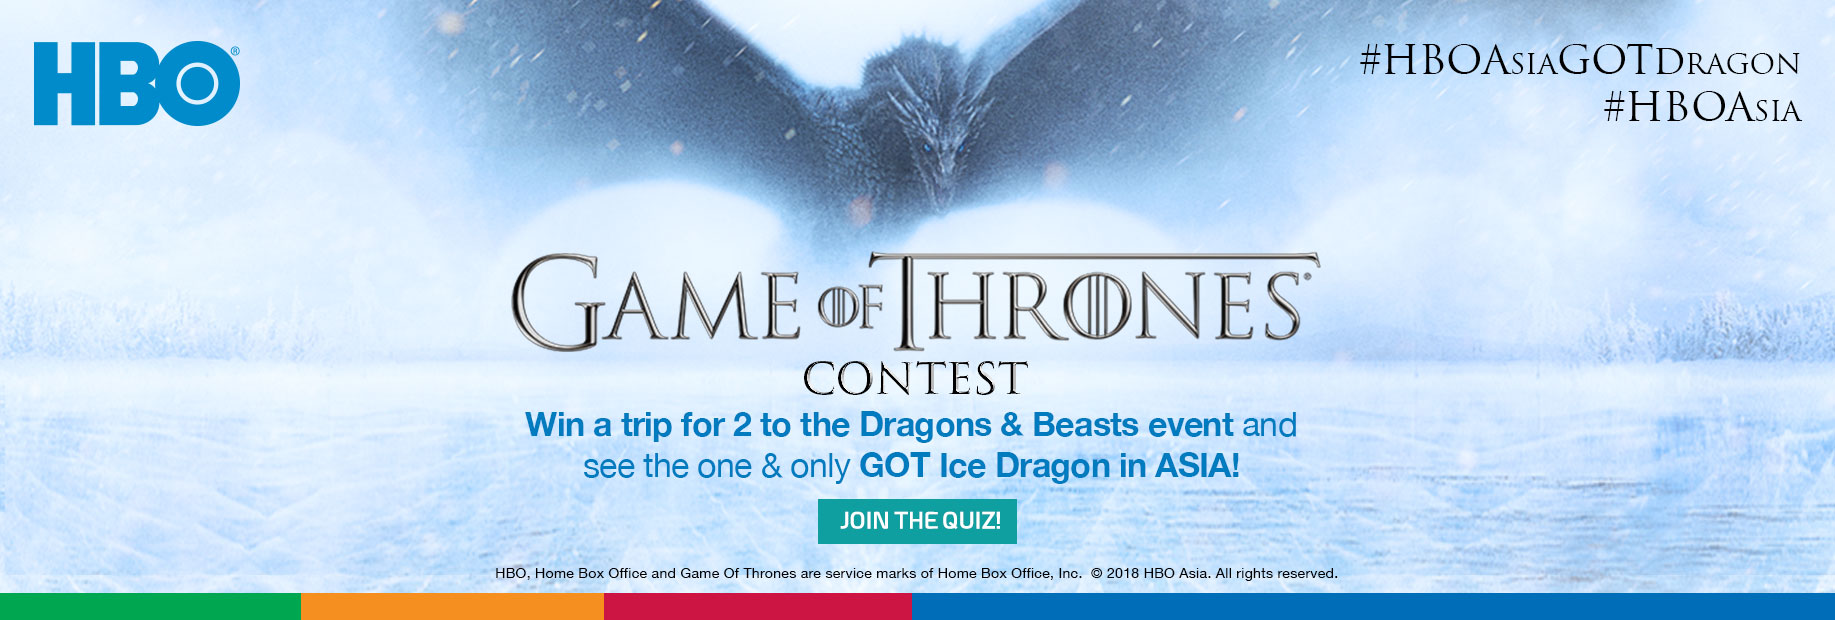 HBO GOT Flyaway to Singapore Contest image